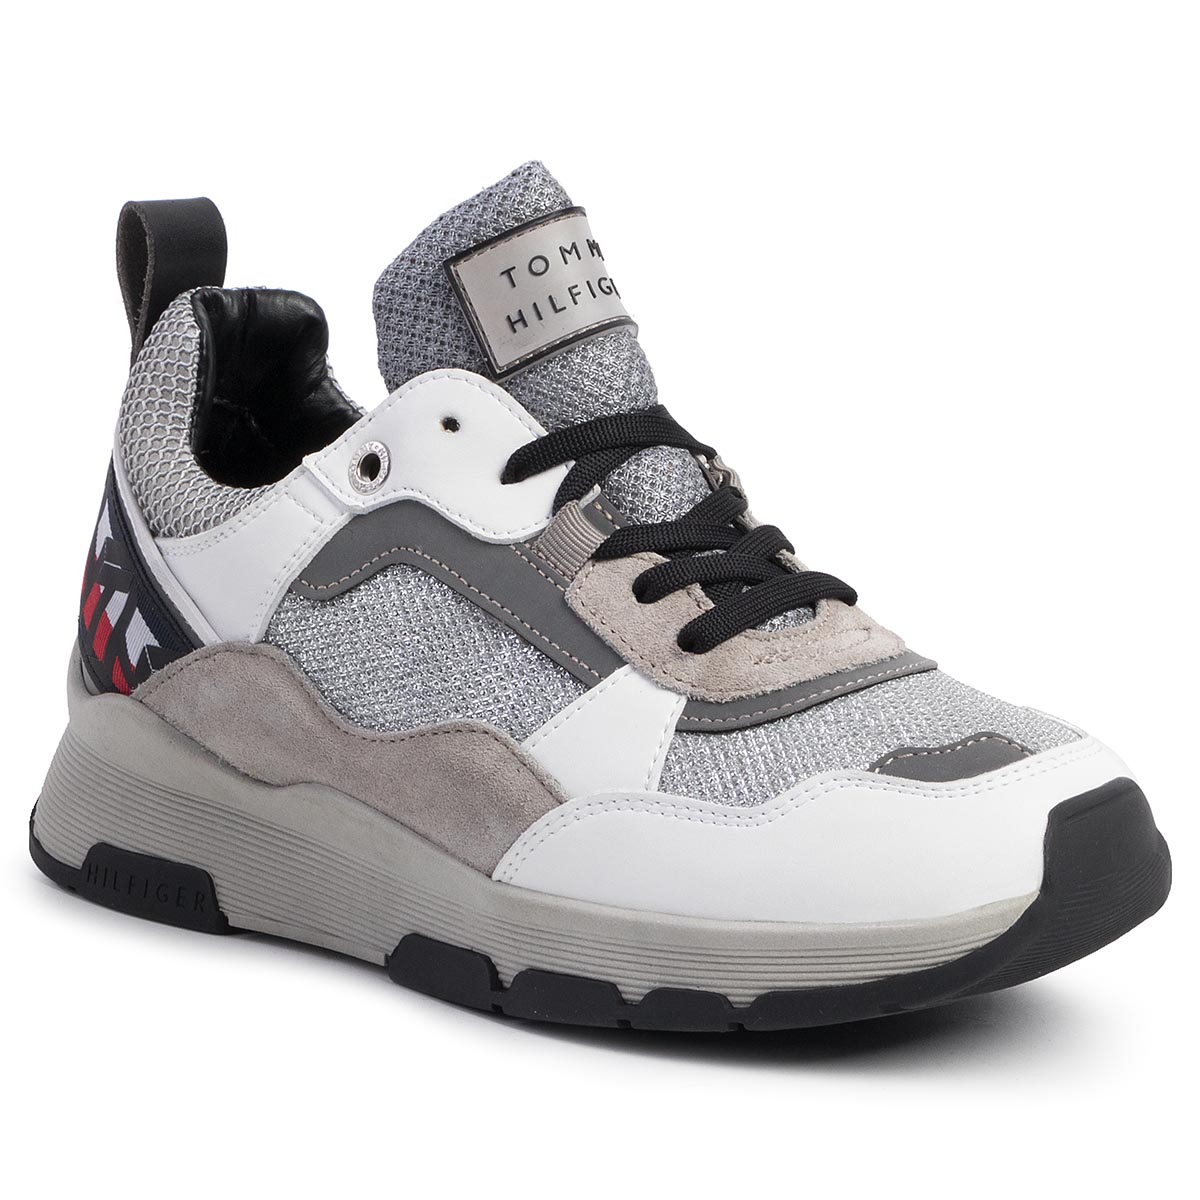 Sneakers TOMMY HILFIGER - Patent Fashion Runner FW0FW04609 White YBS